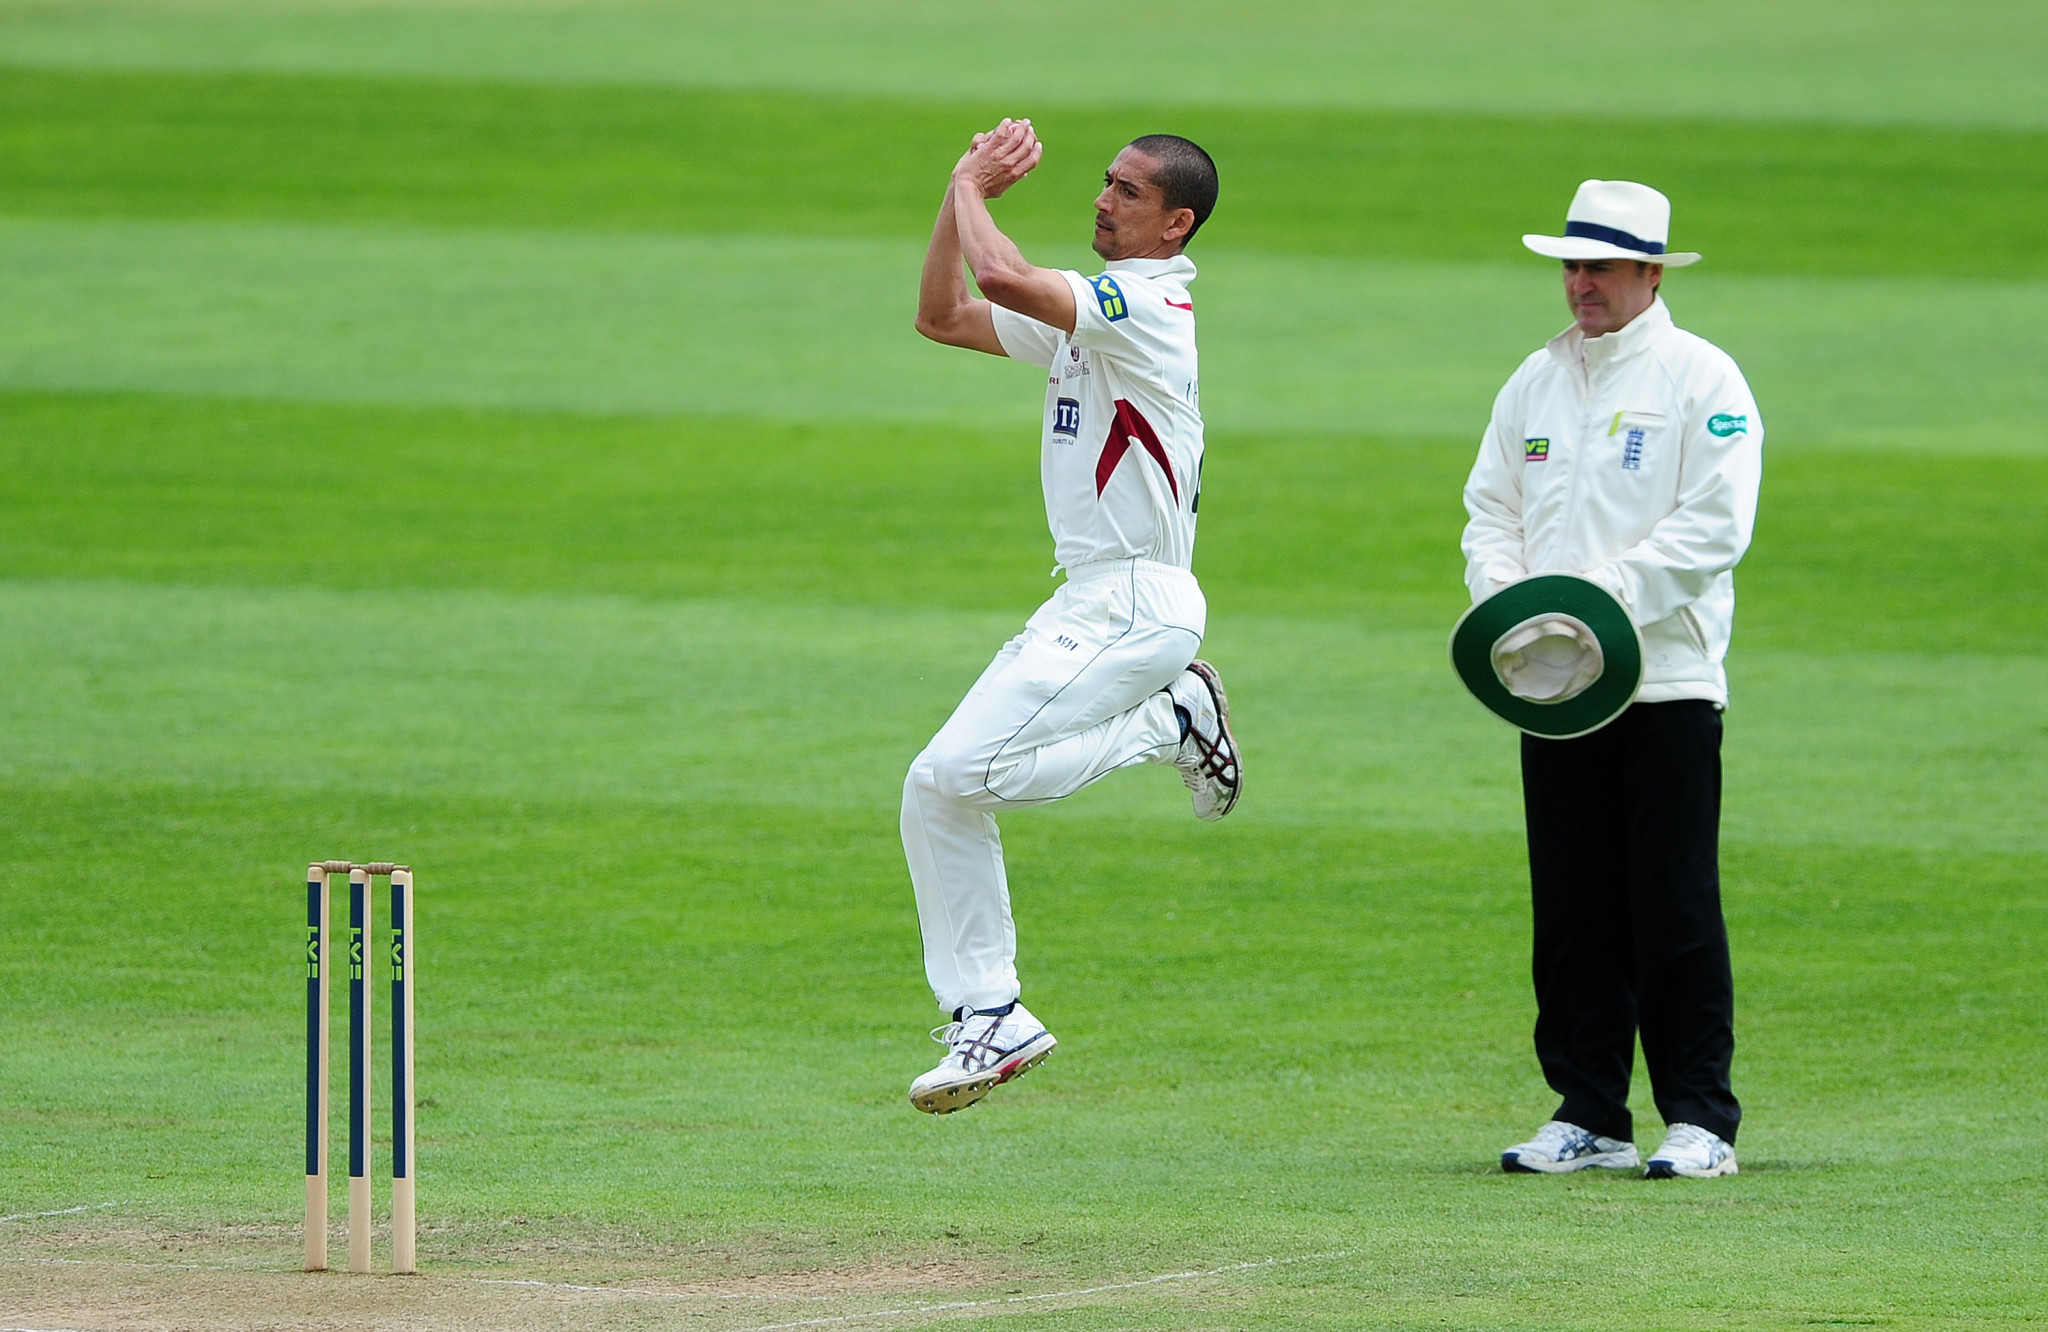 Thomas named West Indies bowling coach